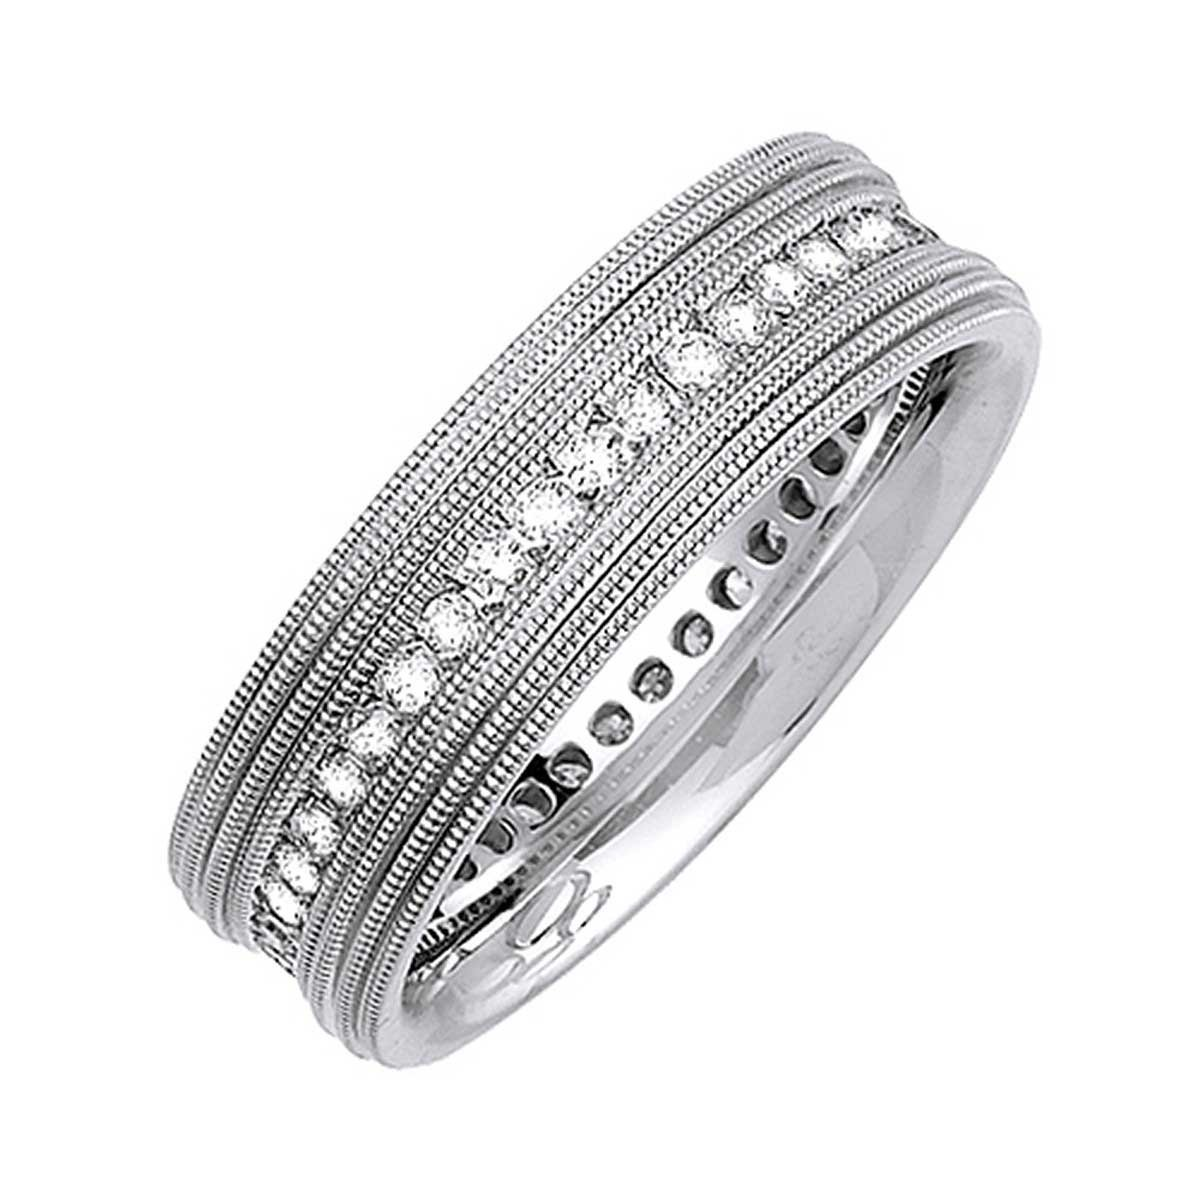 18K White Gold Love Knot Men's Canal Comfort Fit Wedding Band (7mm) Size-9.5c1